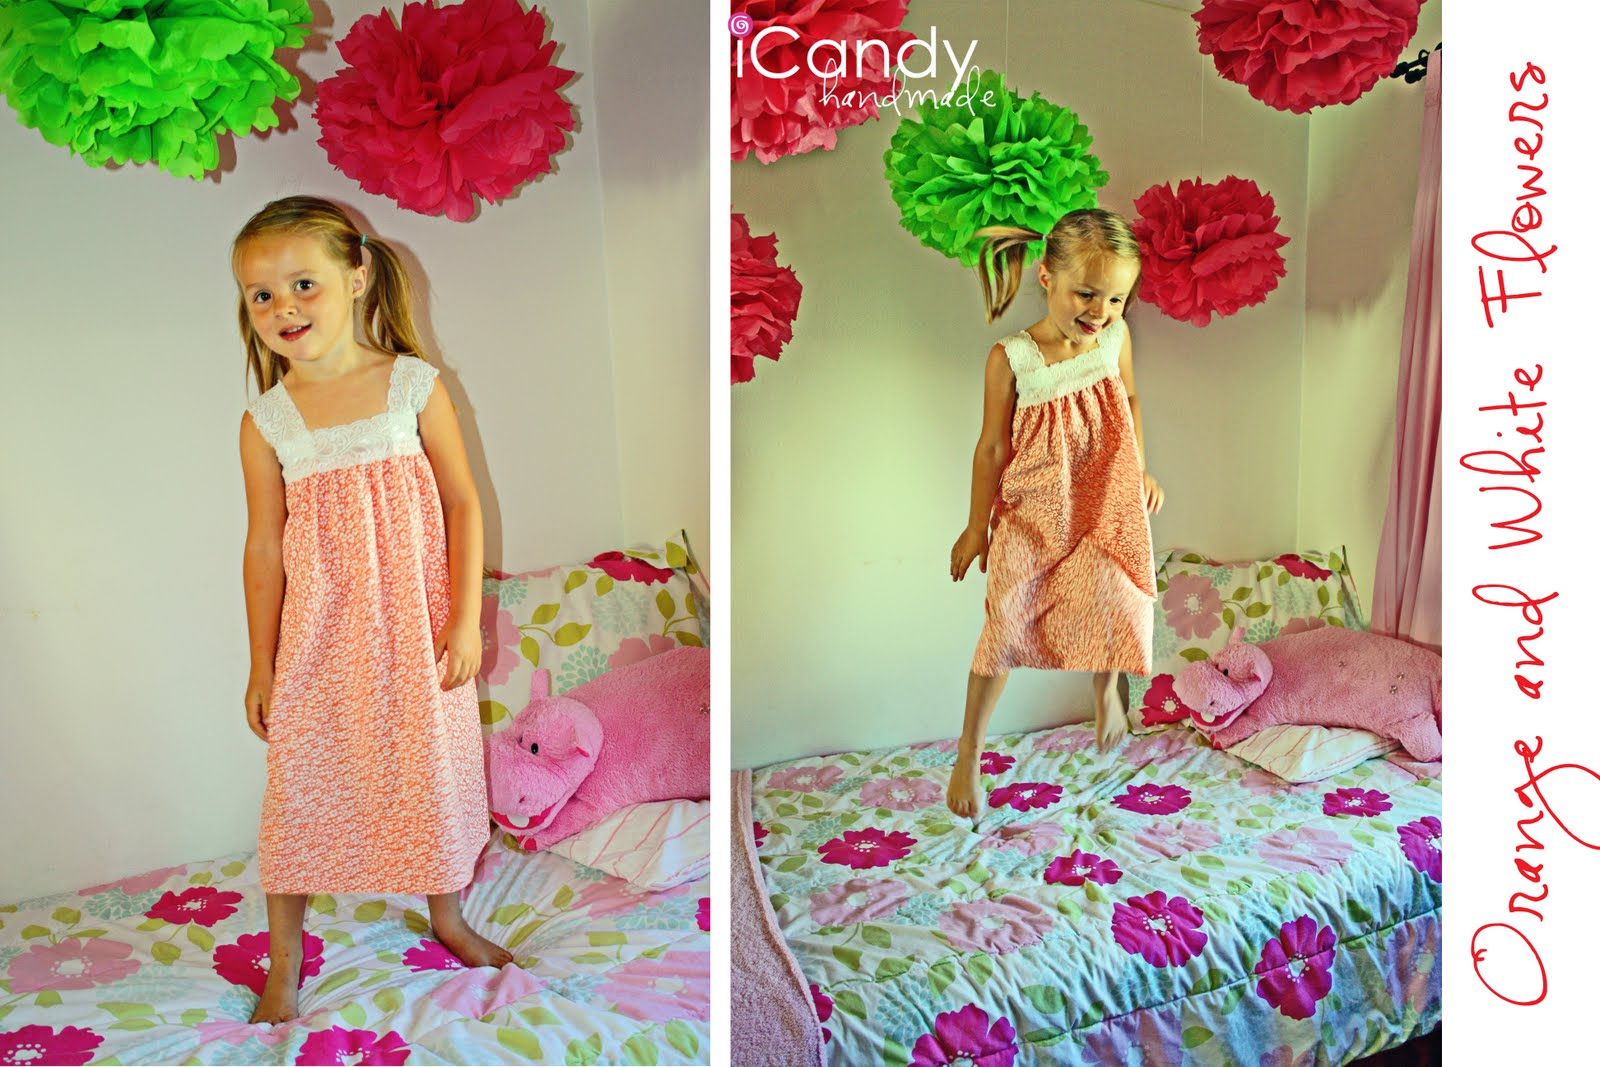 Diy Pillowcase Nightgown: DIY pillowcase nightgowns take 2   iCandy handmade,